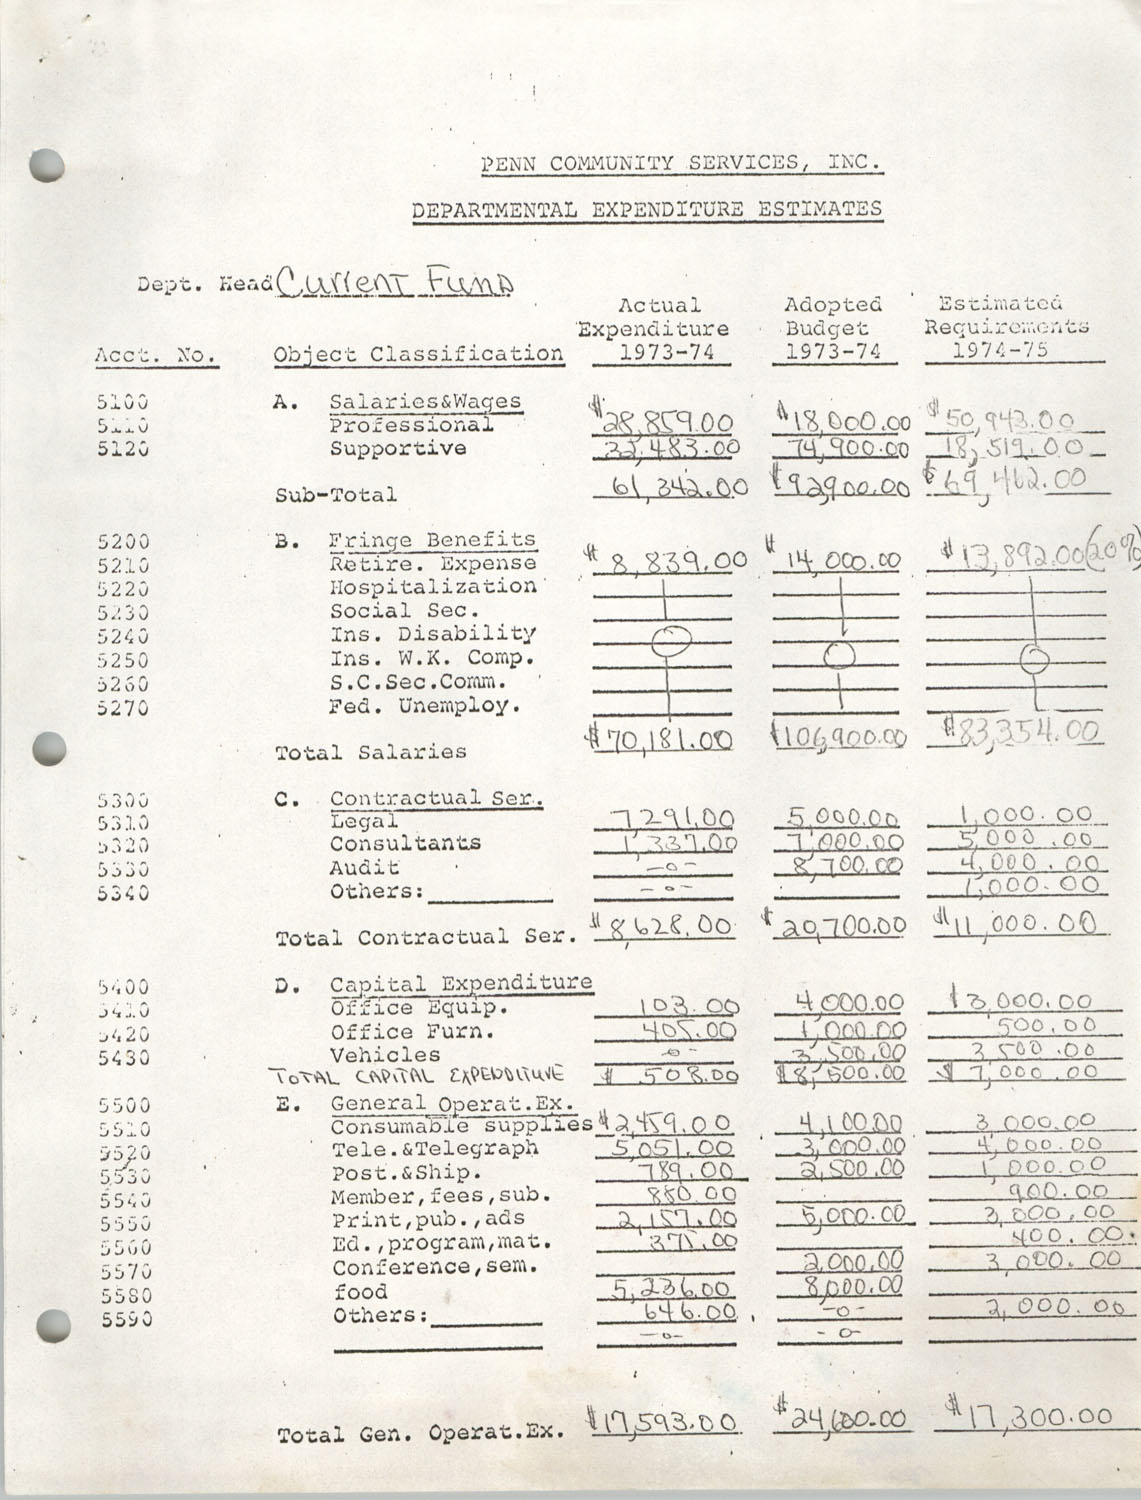 Departmental Expenditure Estimates and Salaries and Wages Estimates, Current Fund, Penn Community Services, 1973-1975